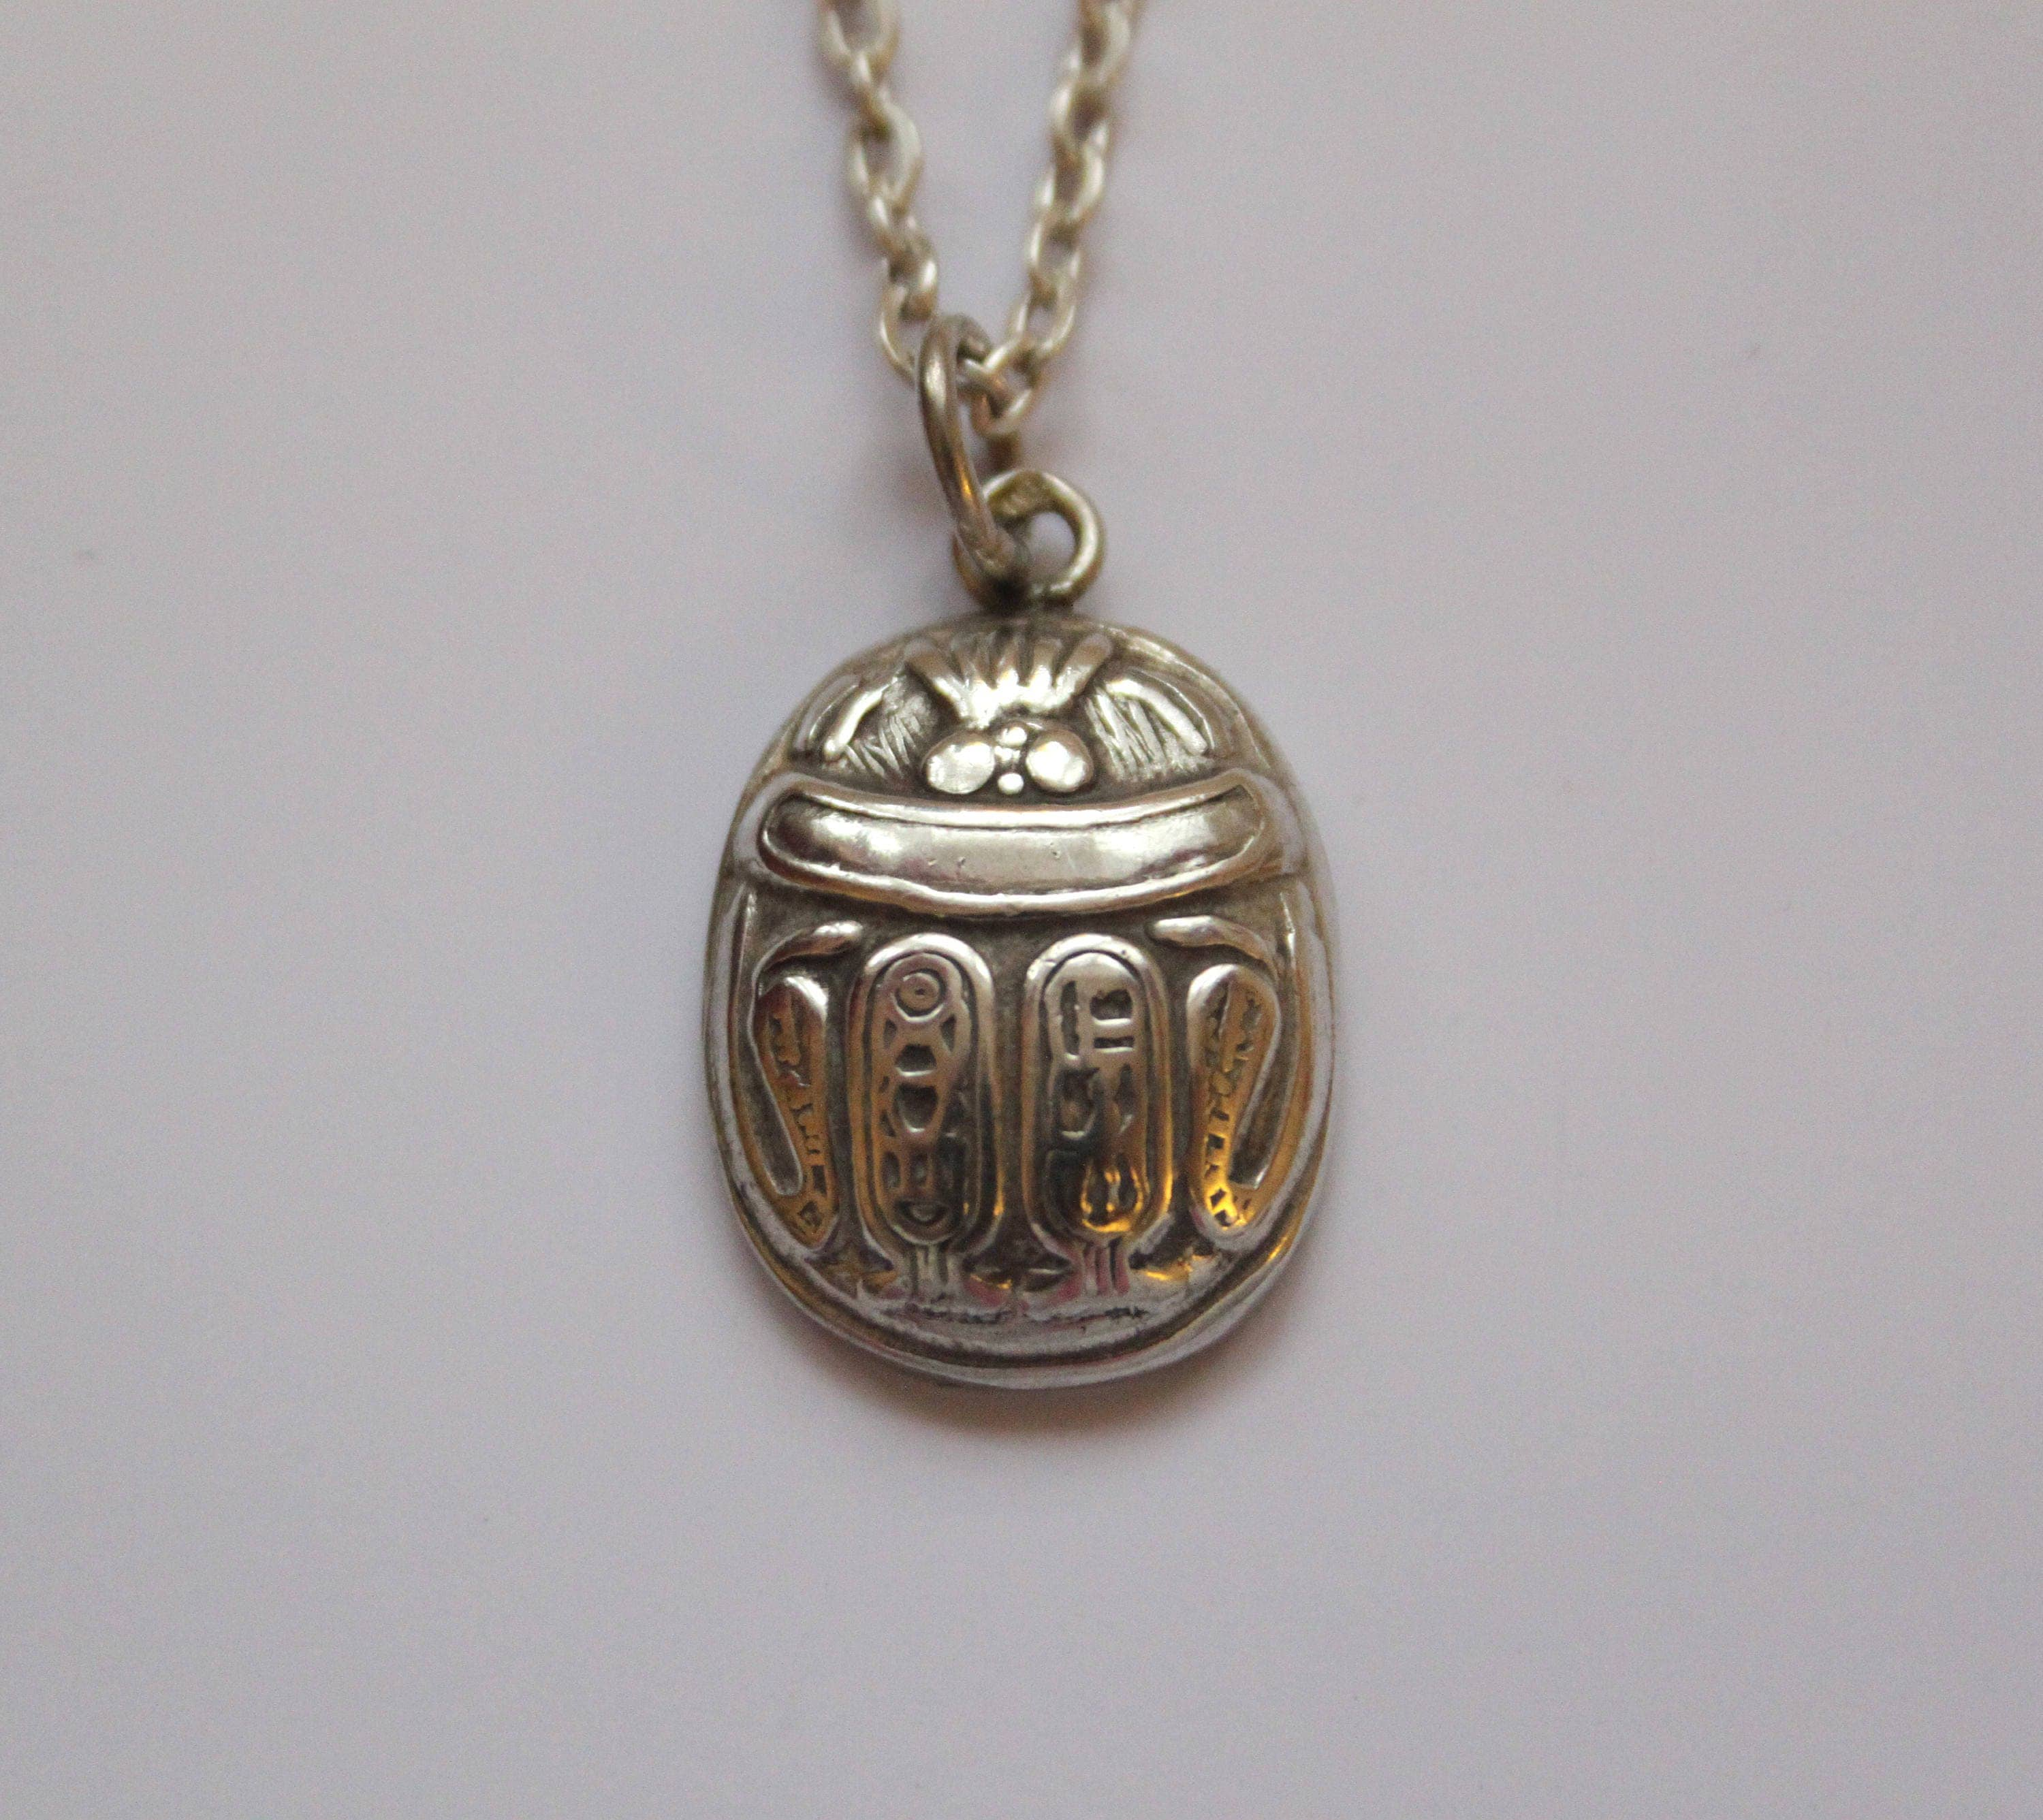 Vintage sterling silver scarab necklace pendant egyptian scarab vintage sterling silver scarab necklace pendant egyptian scarab beetle pendant aloadofball Choice Image